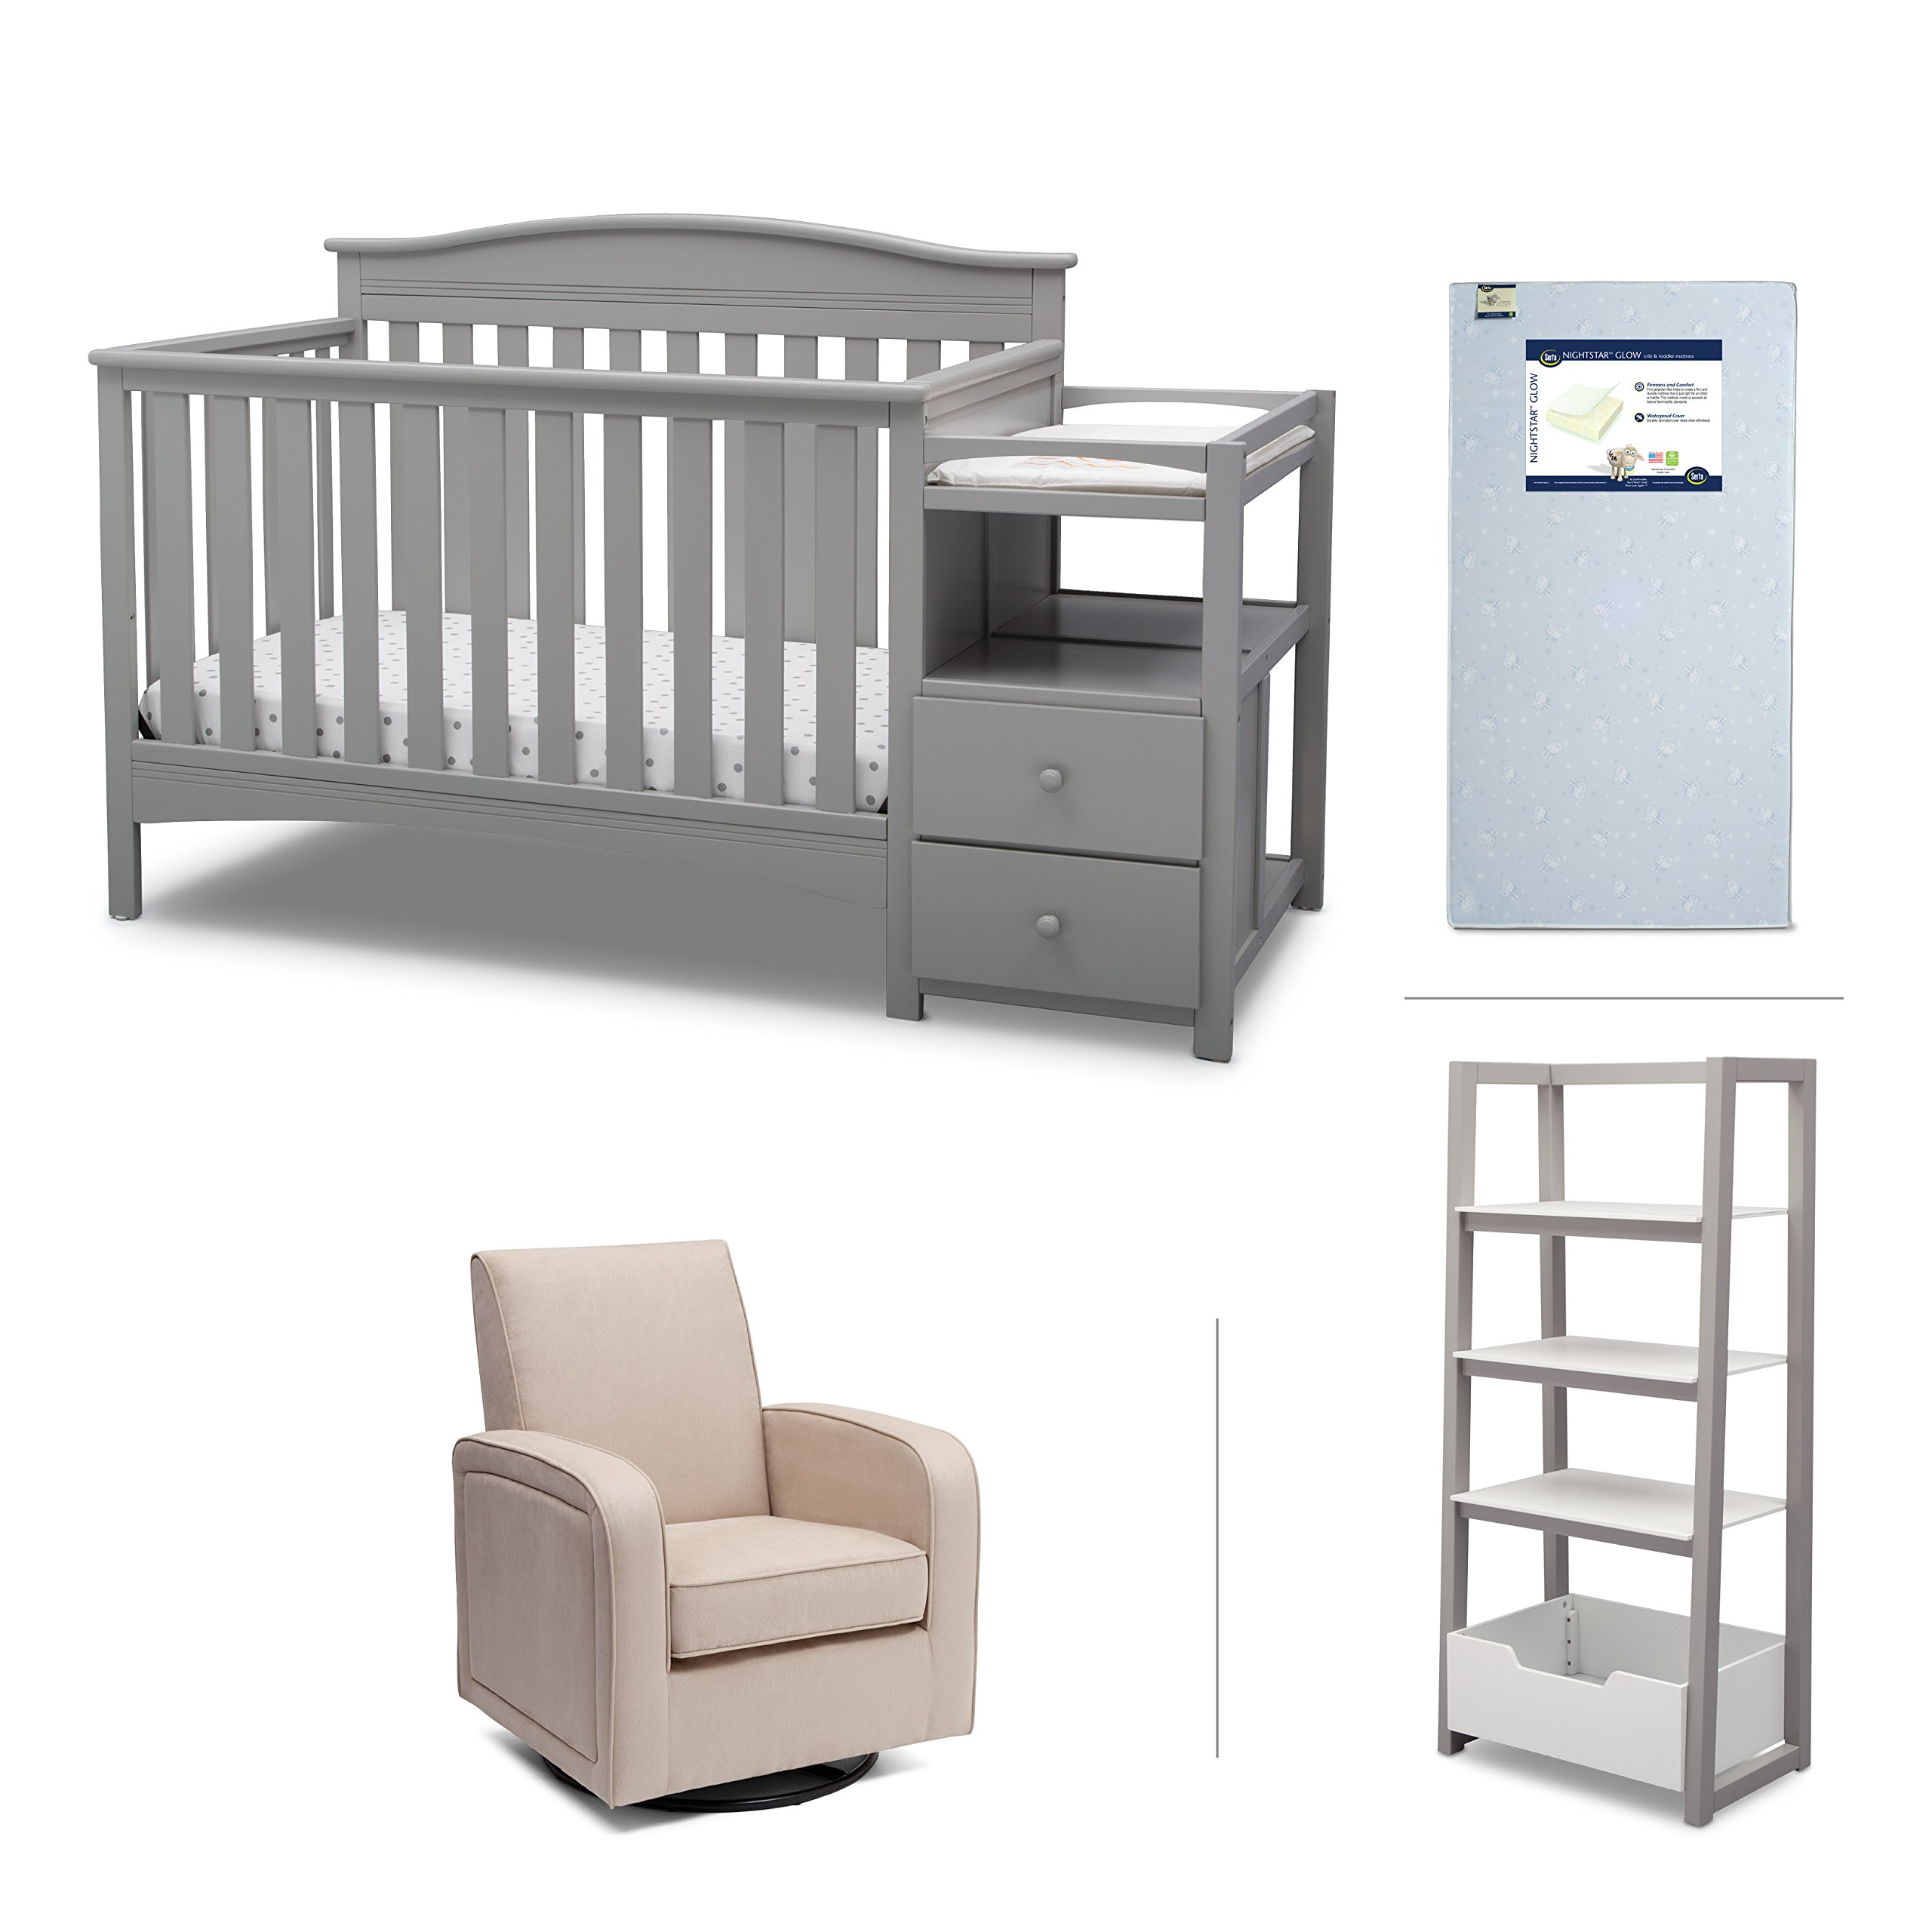 Nursery Furniture Set including Crib Mattress, Convertible Crib-N-Changer, Glider and Wood Ladder Shelf for Book and pictures – Belle by Delta Children, Grey